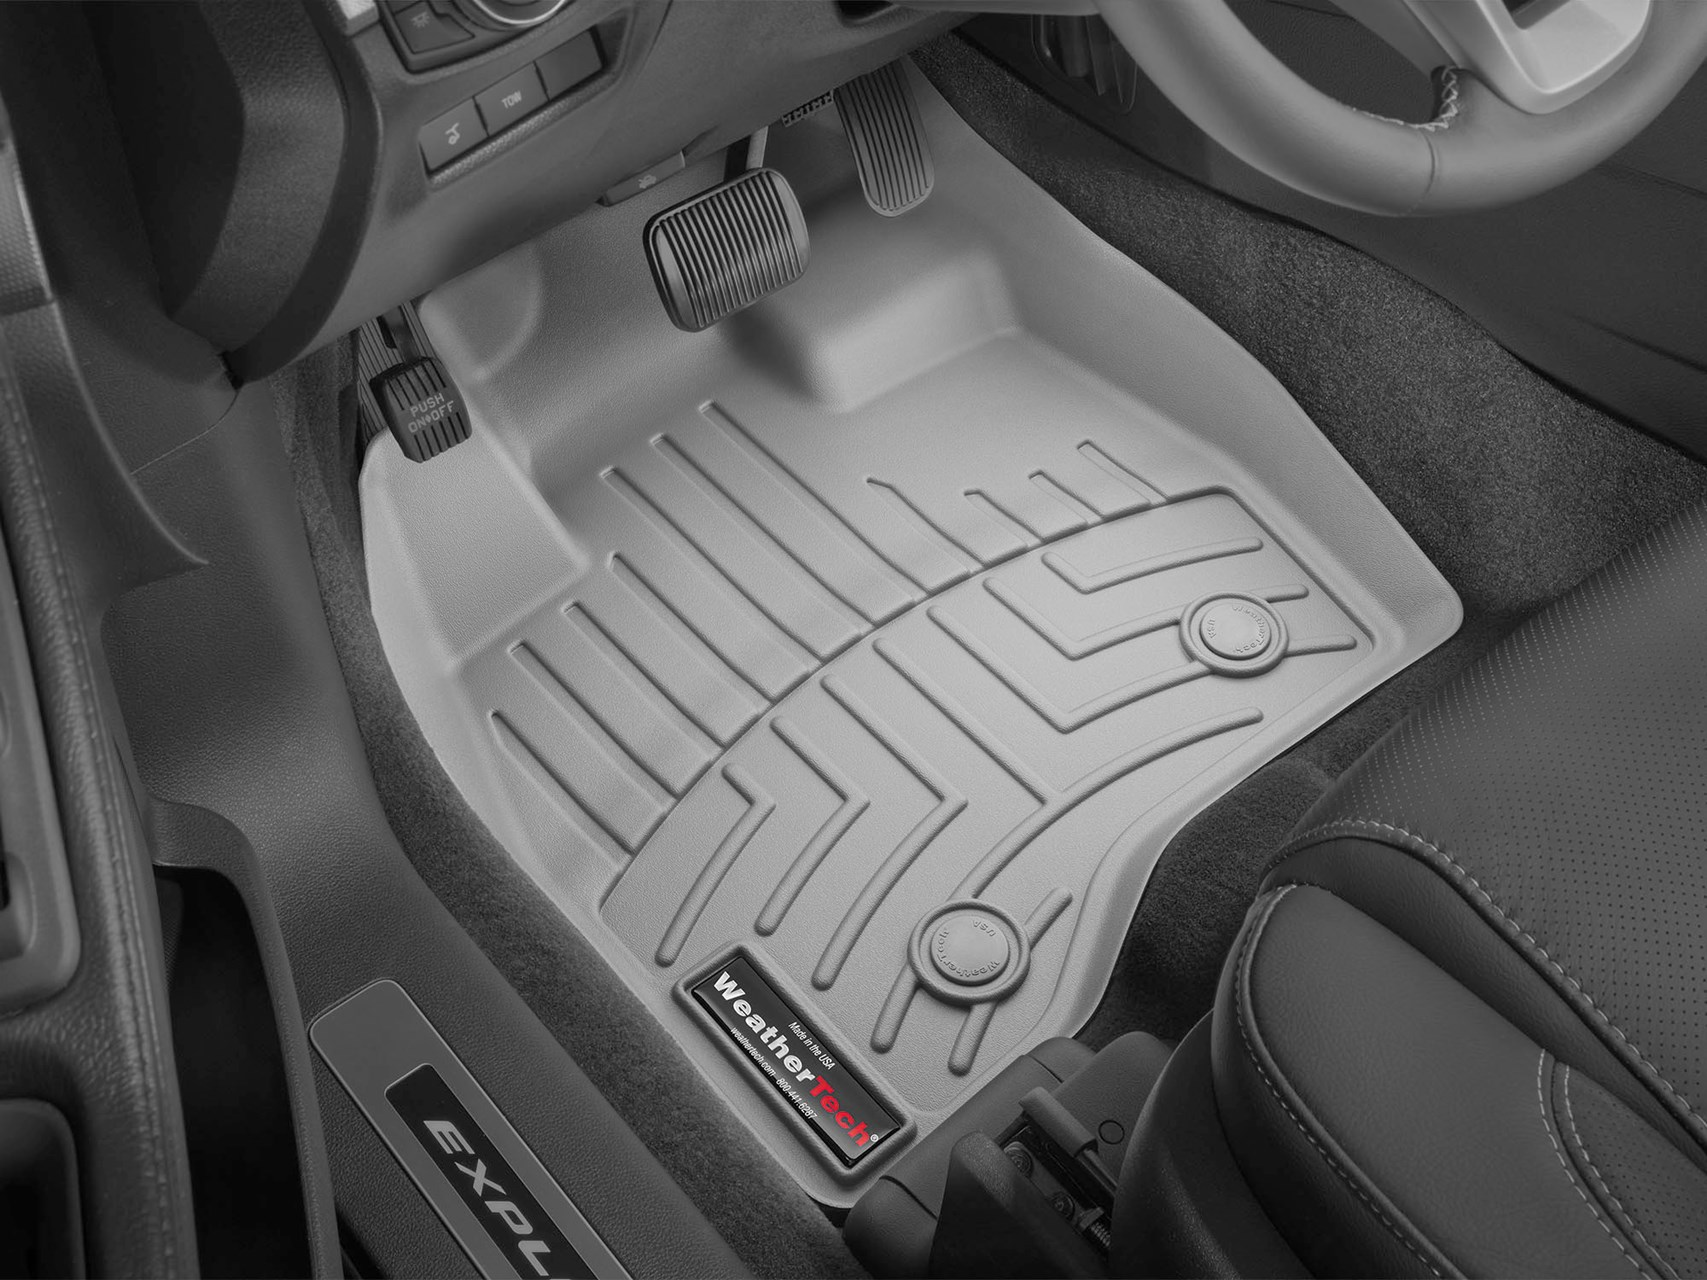 awesome within amazing the beautiful weatherguard pair all mats weather black weathertech digitalfit roush and laser front f tech floor